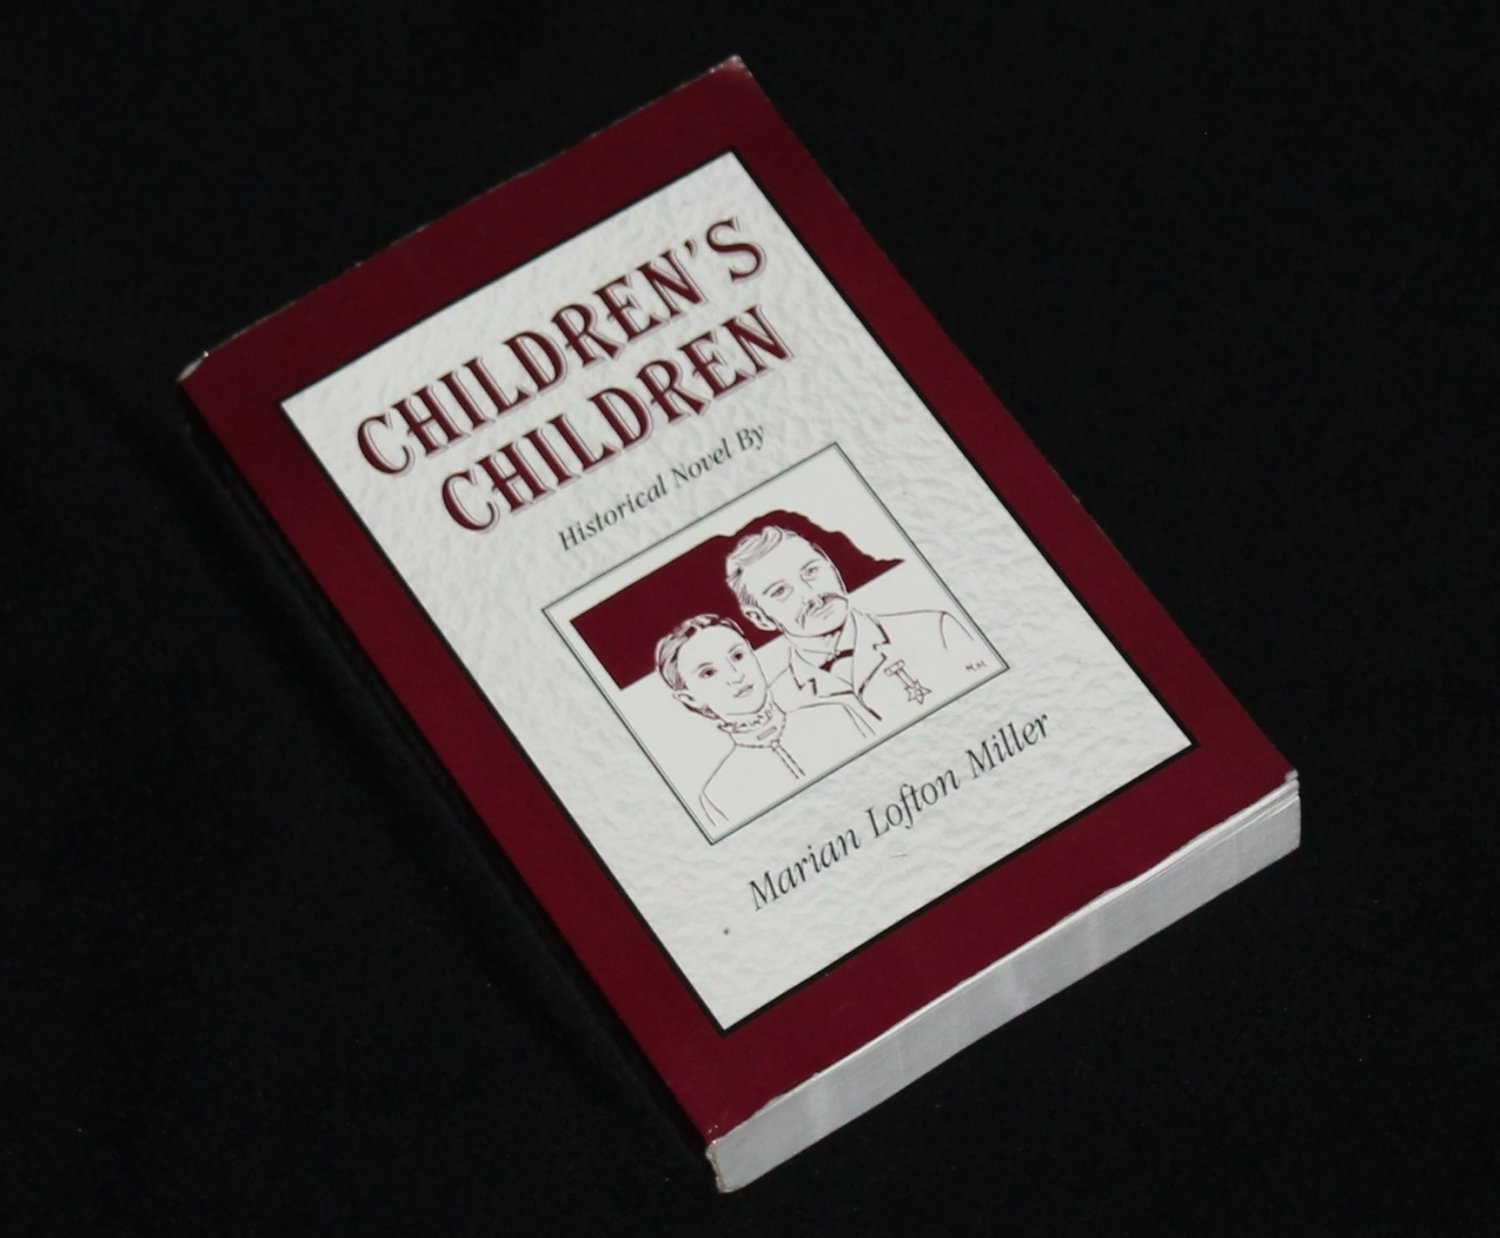 Children's Children historical novel by Marian Lofton Miller